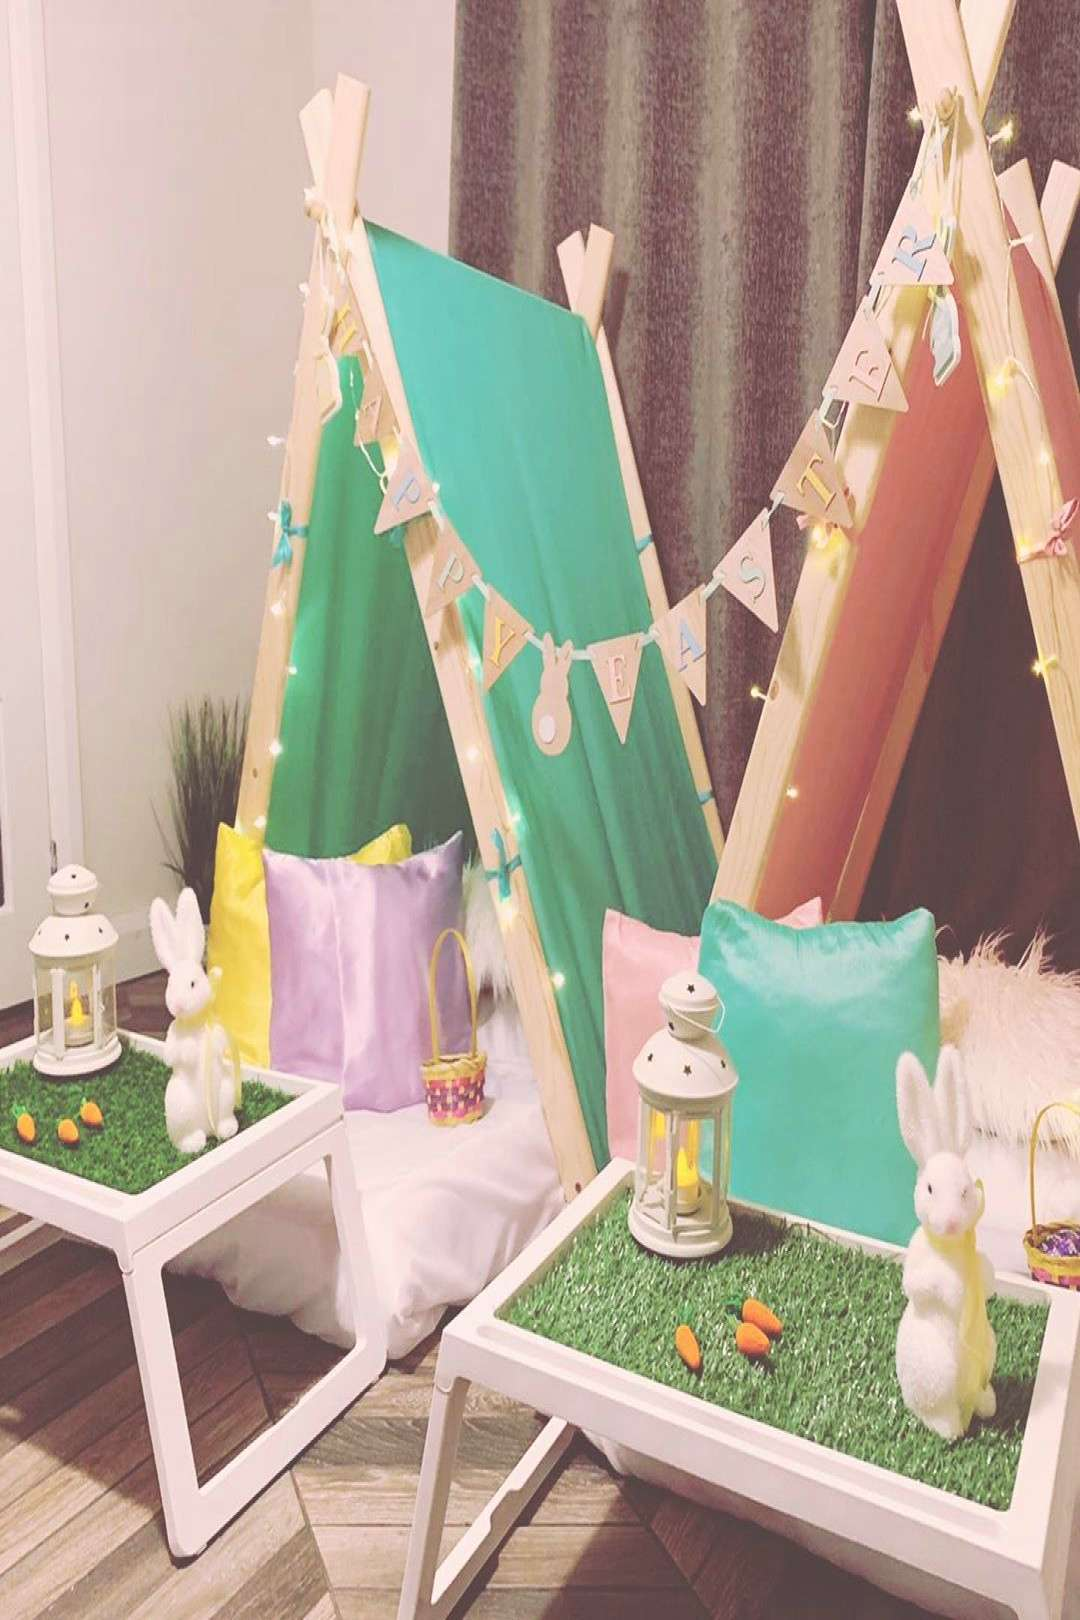 We are now taking bookings for our Easter teepee sleepover partie